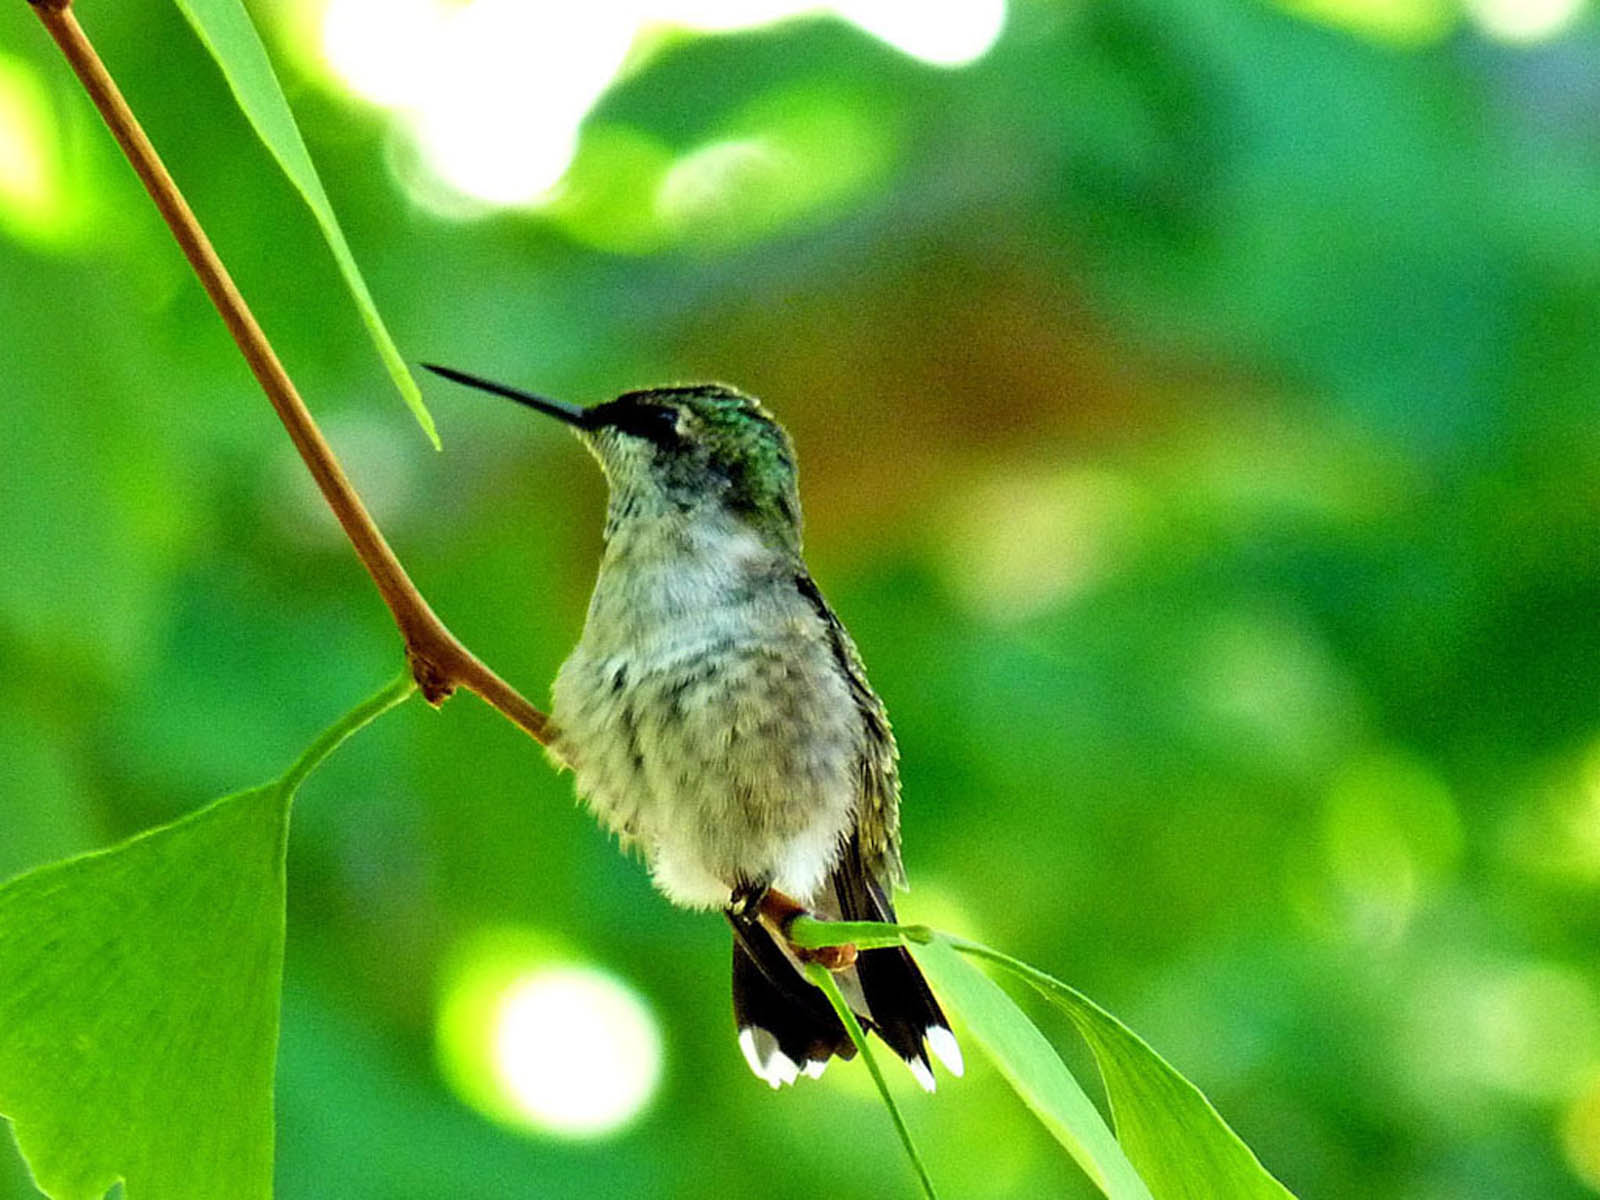 Tag: Hummingbird Wallpapers, Backgrounds, Photos, Images andPictures ...